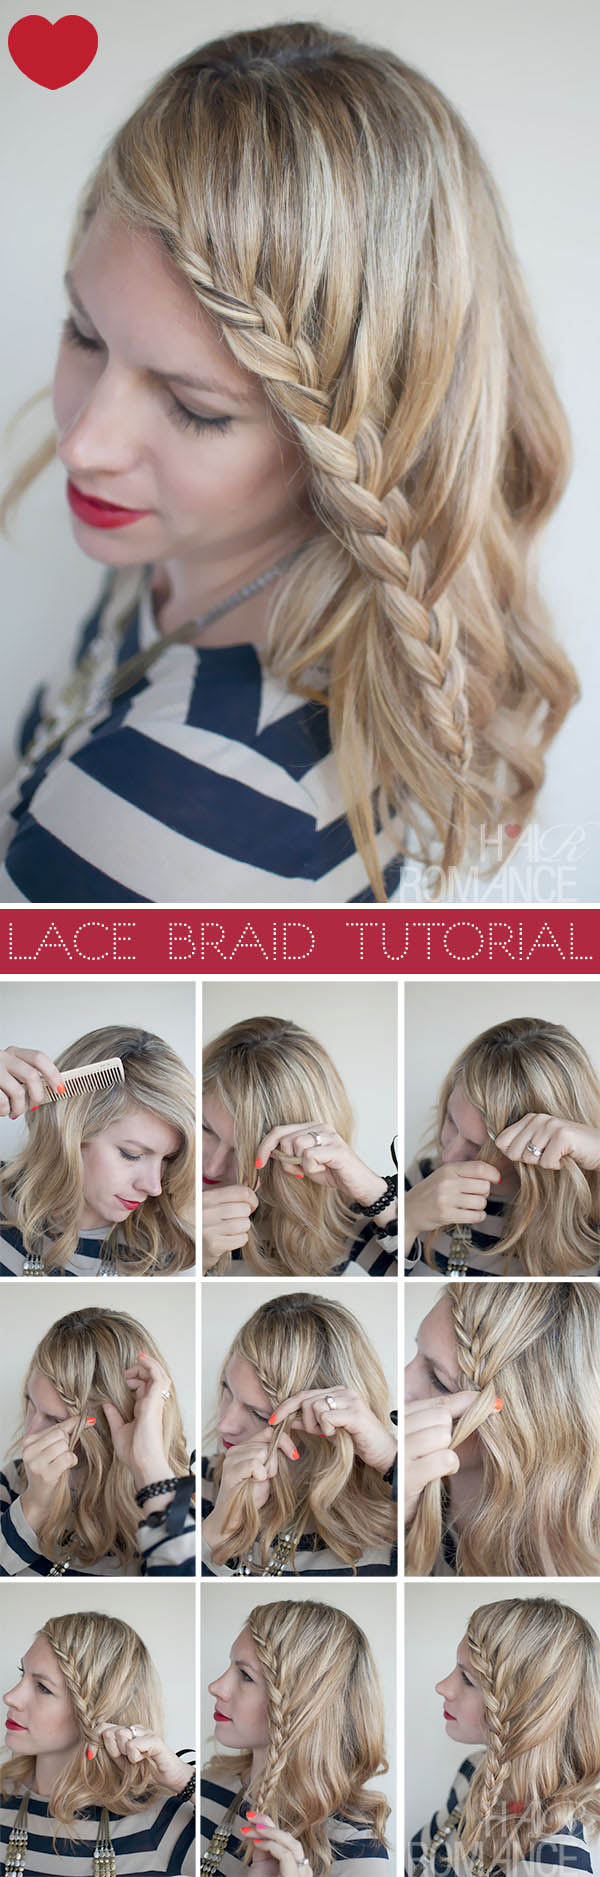 Awe Inspiring 20 Most Beautiful Braided Hairstyle Tutorials For 2014 Pretty Hairstyle Inspiration Daily Dogsangcom